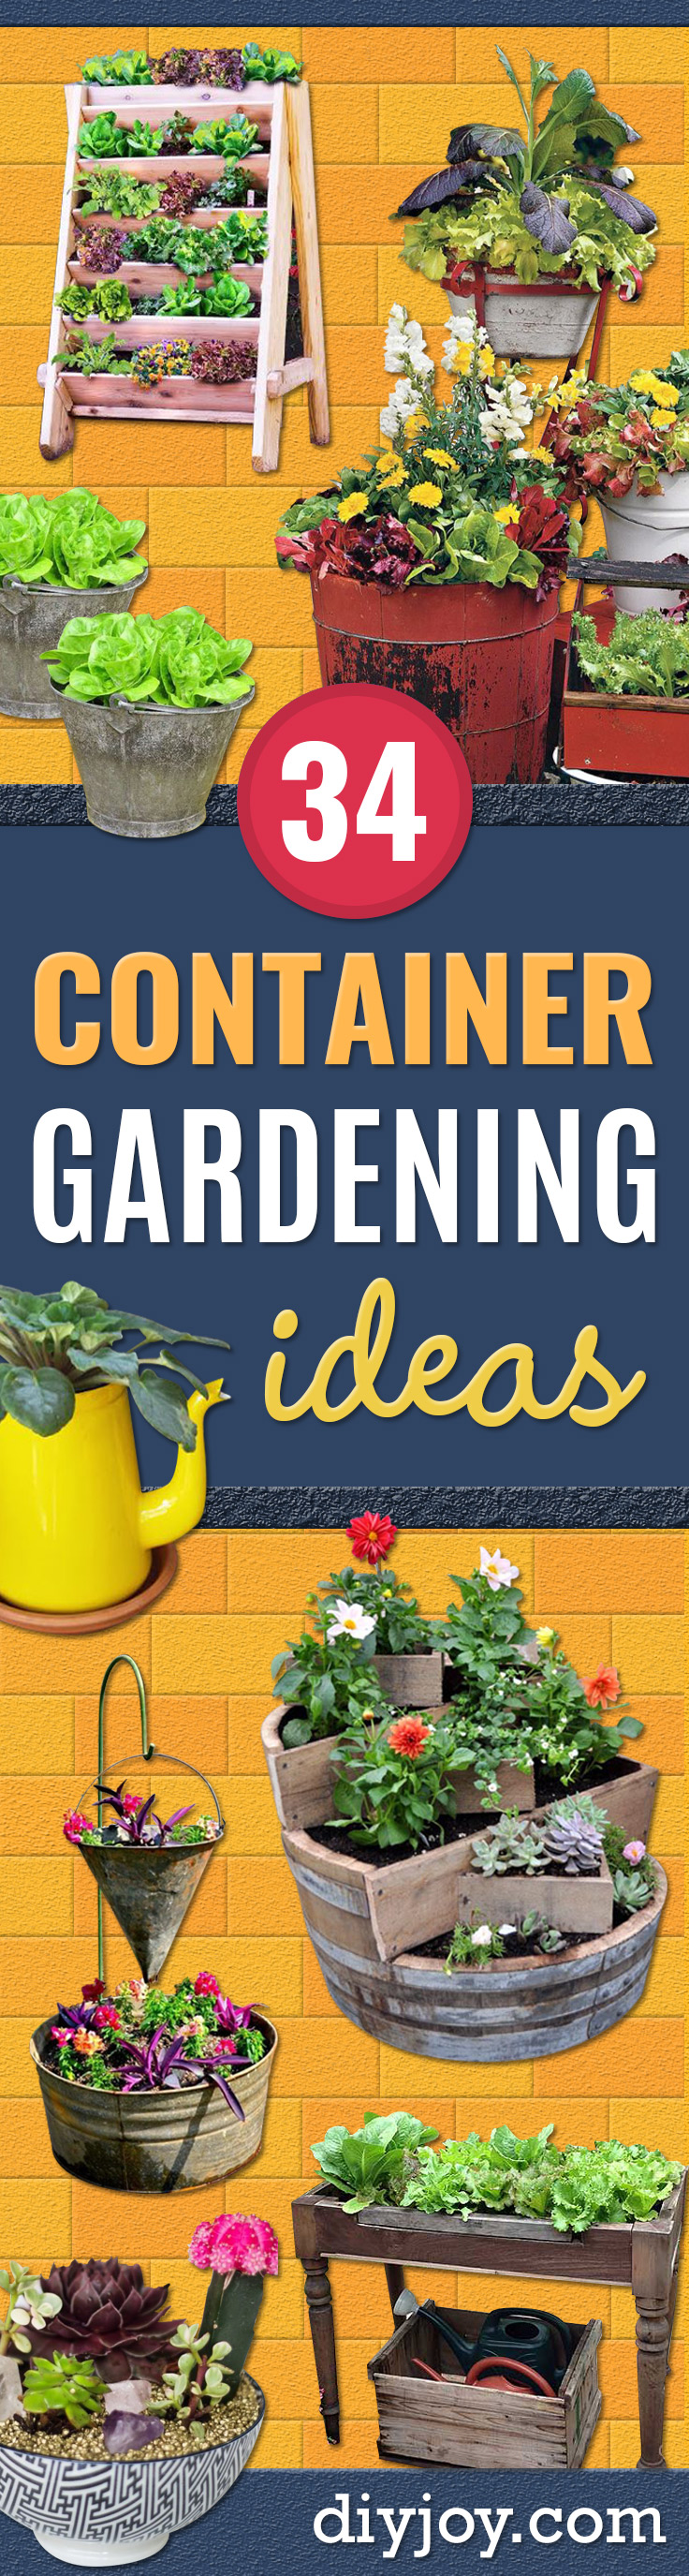 Container Gardening Ideas - Easy Garden Projects for Containers and Growing Plants in Small Spaces - DIY Potting Tips and Planter Boxes for Vegetables, Herbs and Flowers - Simple Ideas for Beginners -Shade, Full Sun, Pation and Yard Landscape Idea tutorials